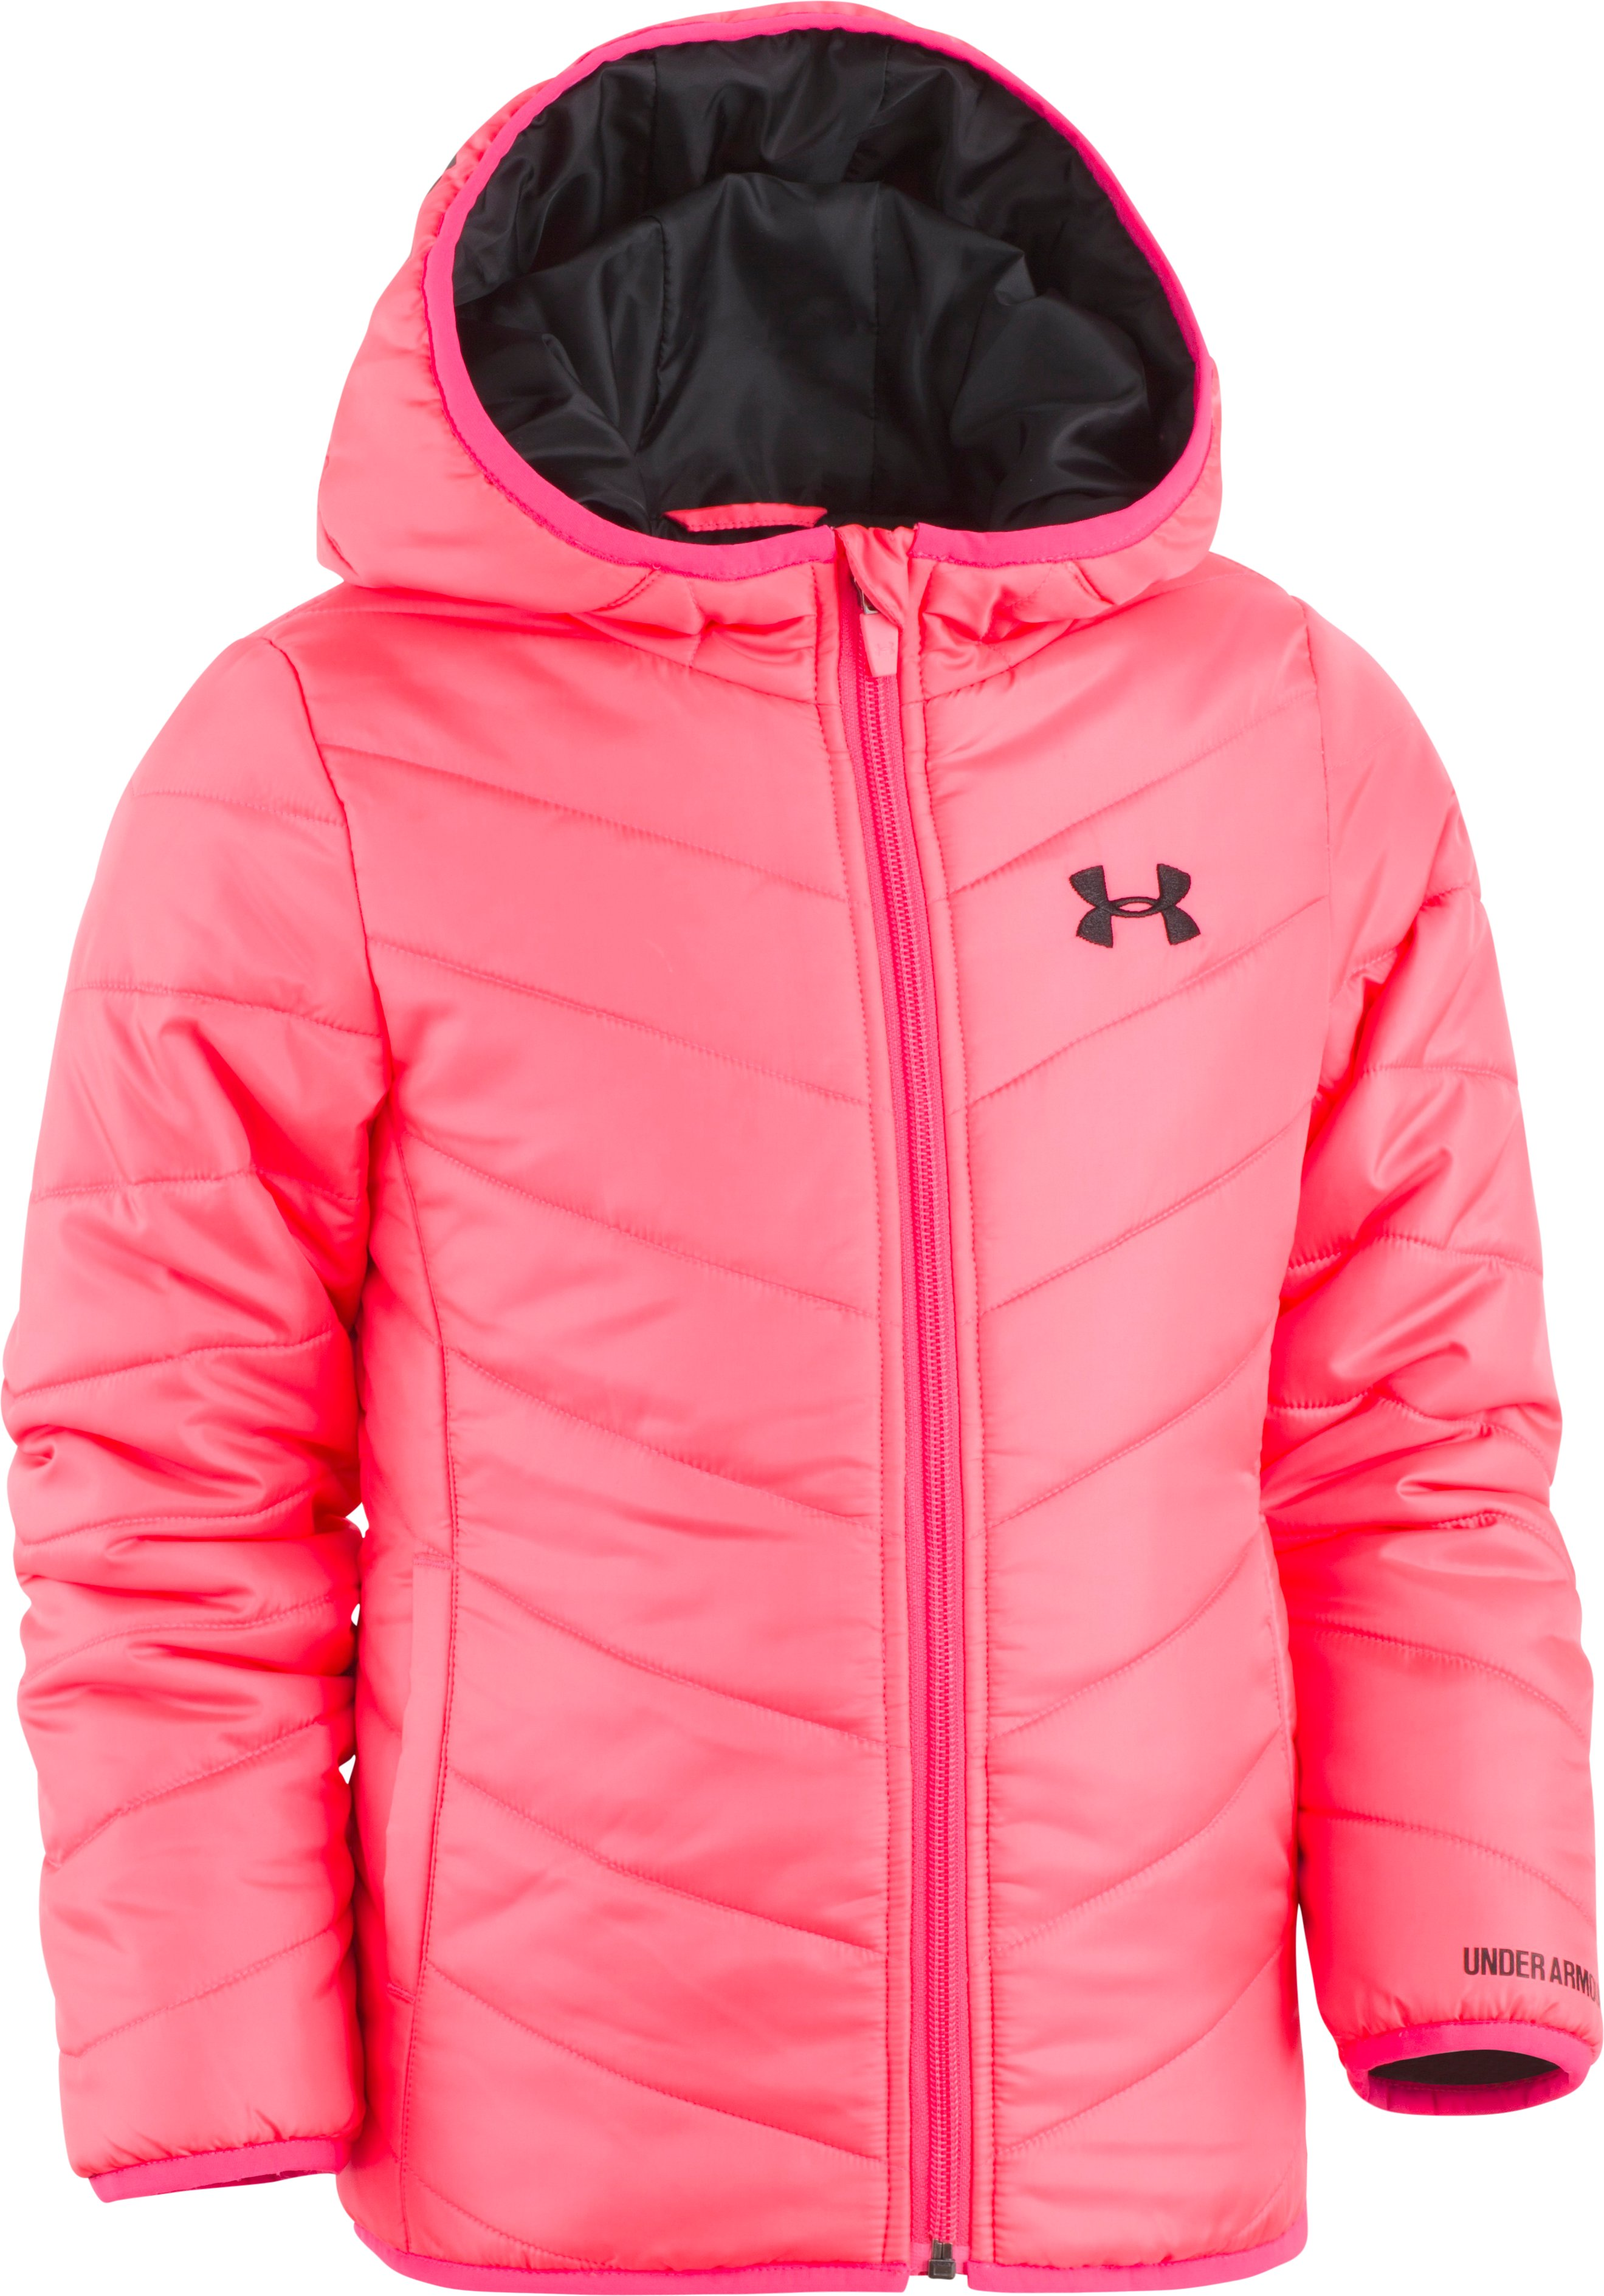 Girls' Infant UA Premier Puffer Jacket, PENTA PINK, Laydown